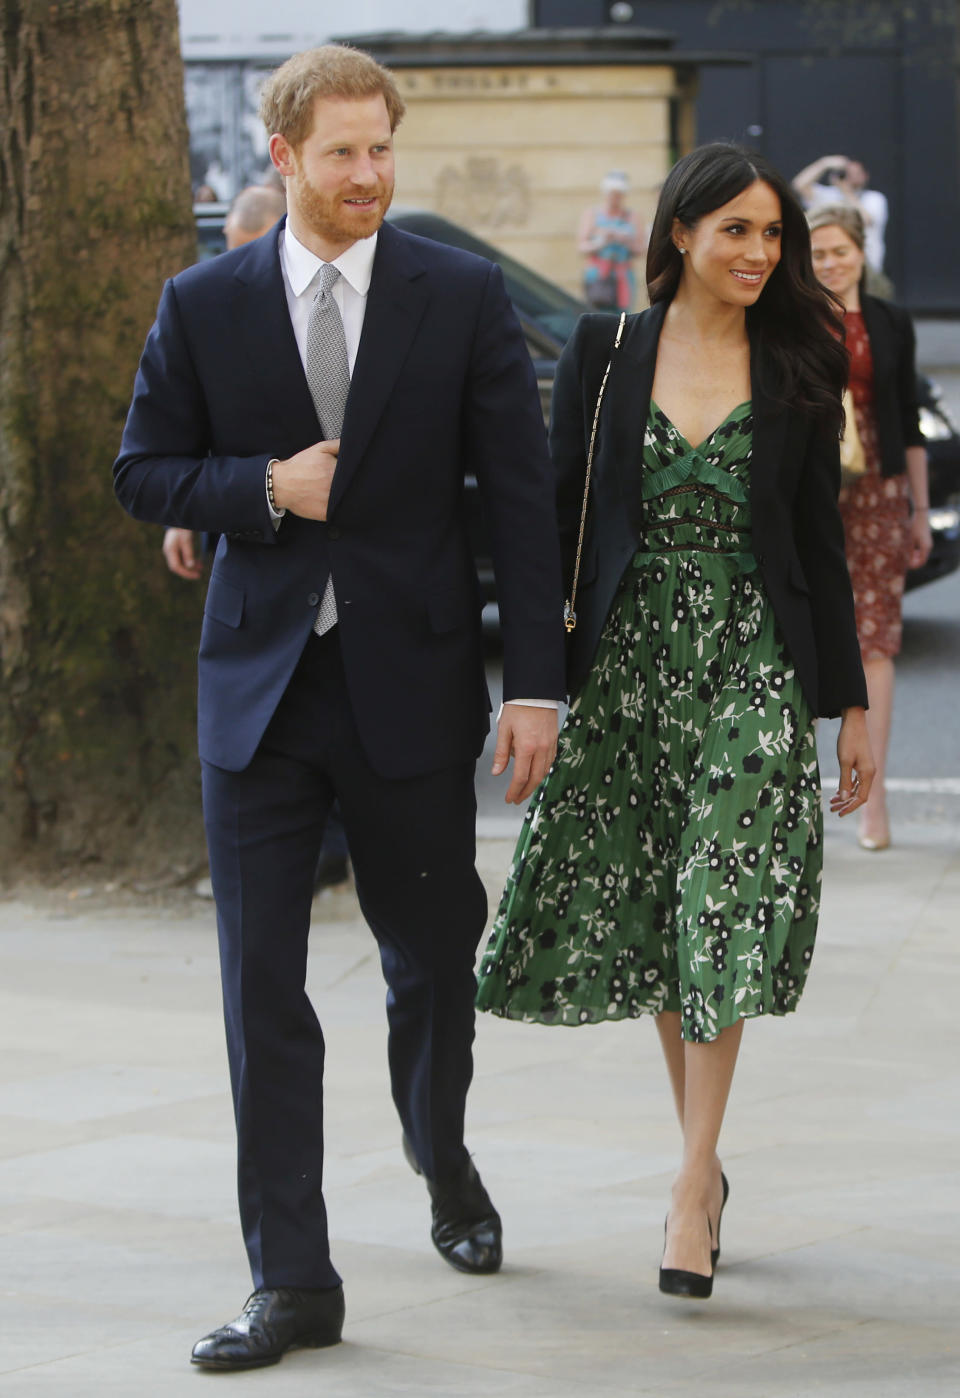 """<p>Royal watchers will notice that Markle opted not to drape her blazer over her shoulders this time — something that was slammed as """"unprofessional"""" and against royal protocol when she did it earlier this week. <br>Markle also took two style cues from Kate Middleton. First of all, she wore Alexander McQueen (the Duchess of Cambridge is a major fan — she's been spotted wearing countess McQueen creations, including her wedding dress). Secondly, she showed that like Kate, she's a fan of rewearing her favourite looks. Markle was spotted wearing the same blazer, this time combined with pants, at her first official appearance with Prince Harry back in February. </p>"""